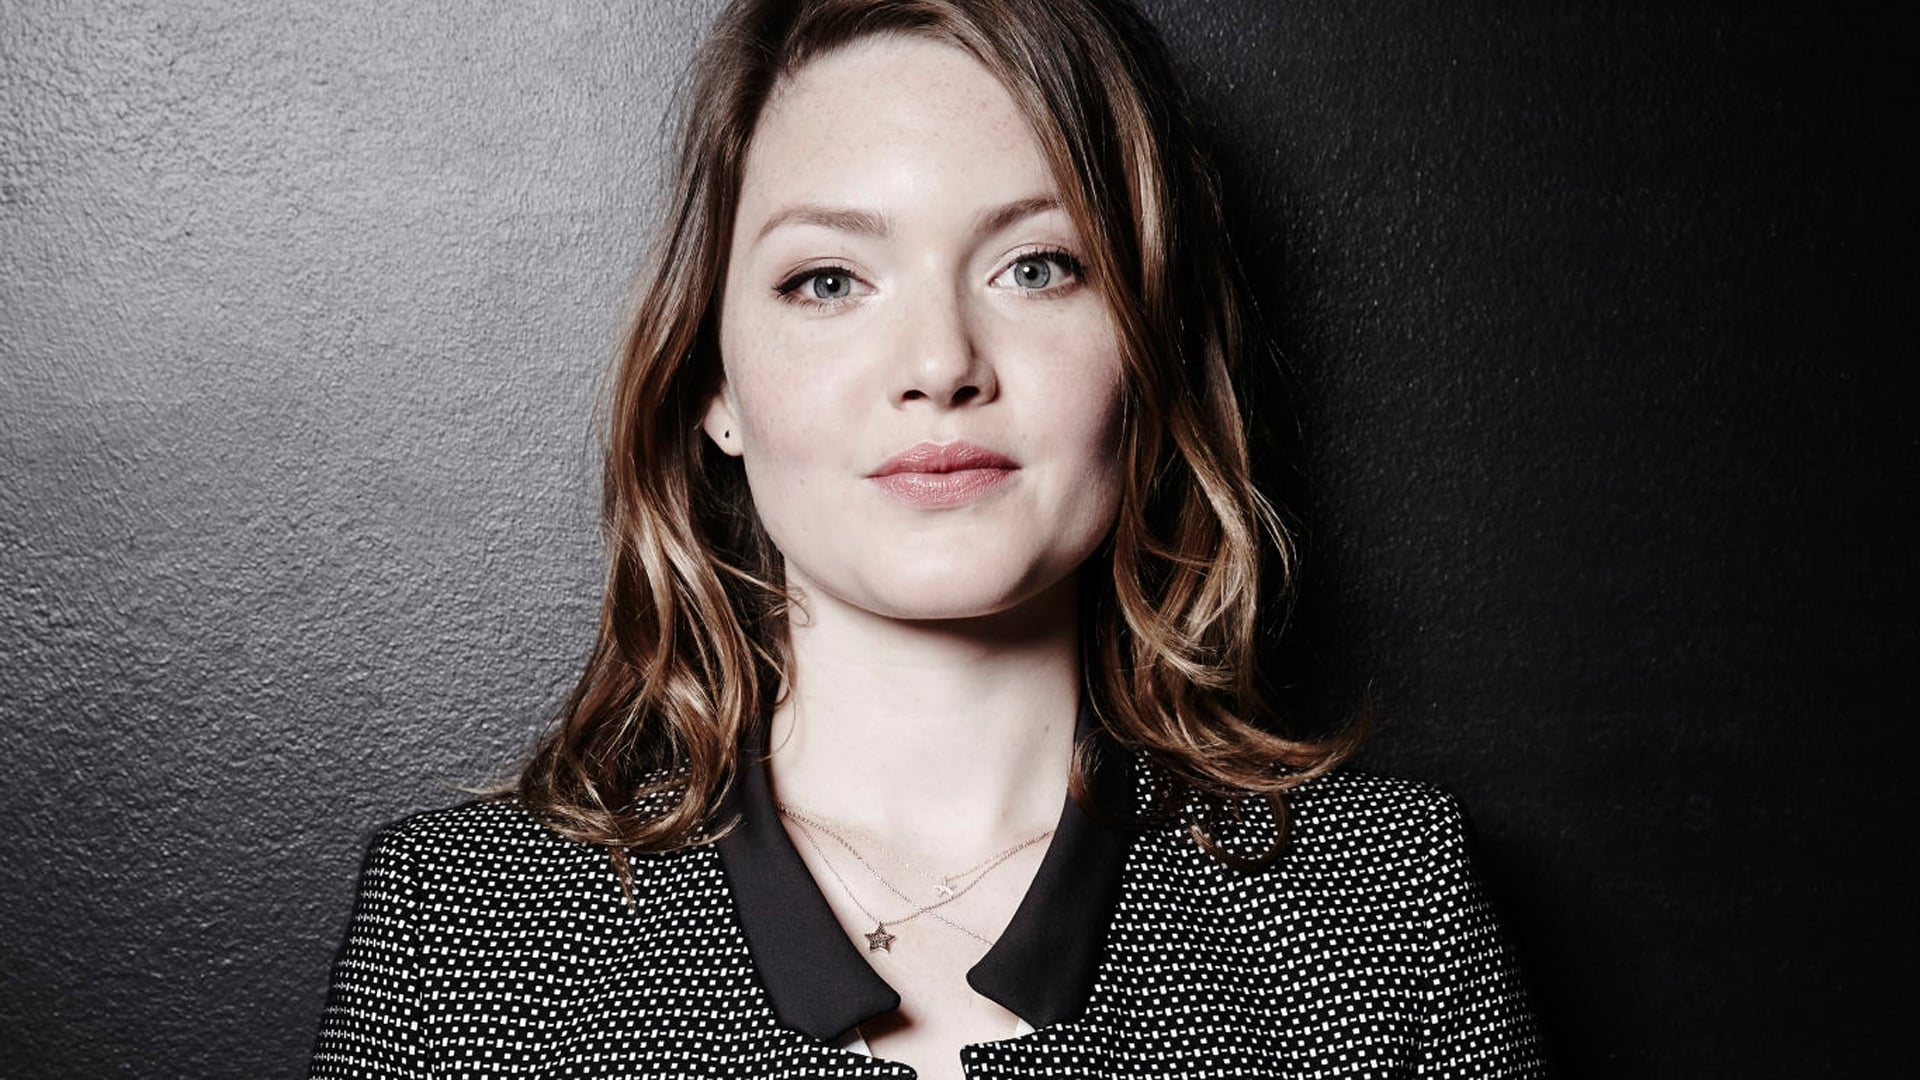 Anime Video Wallpaper Holliday Grainger Hd Wallpapers Free Download